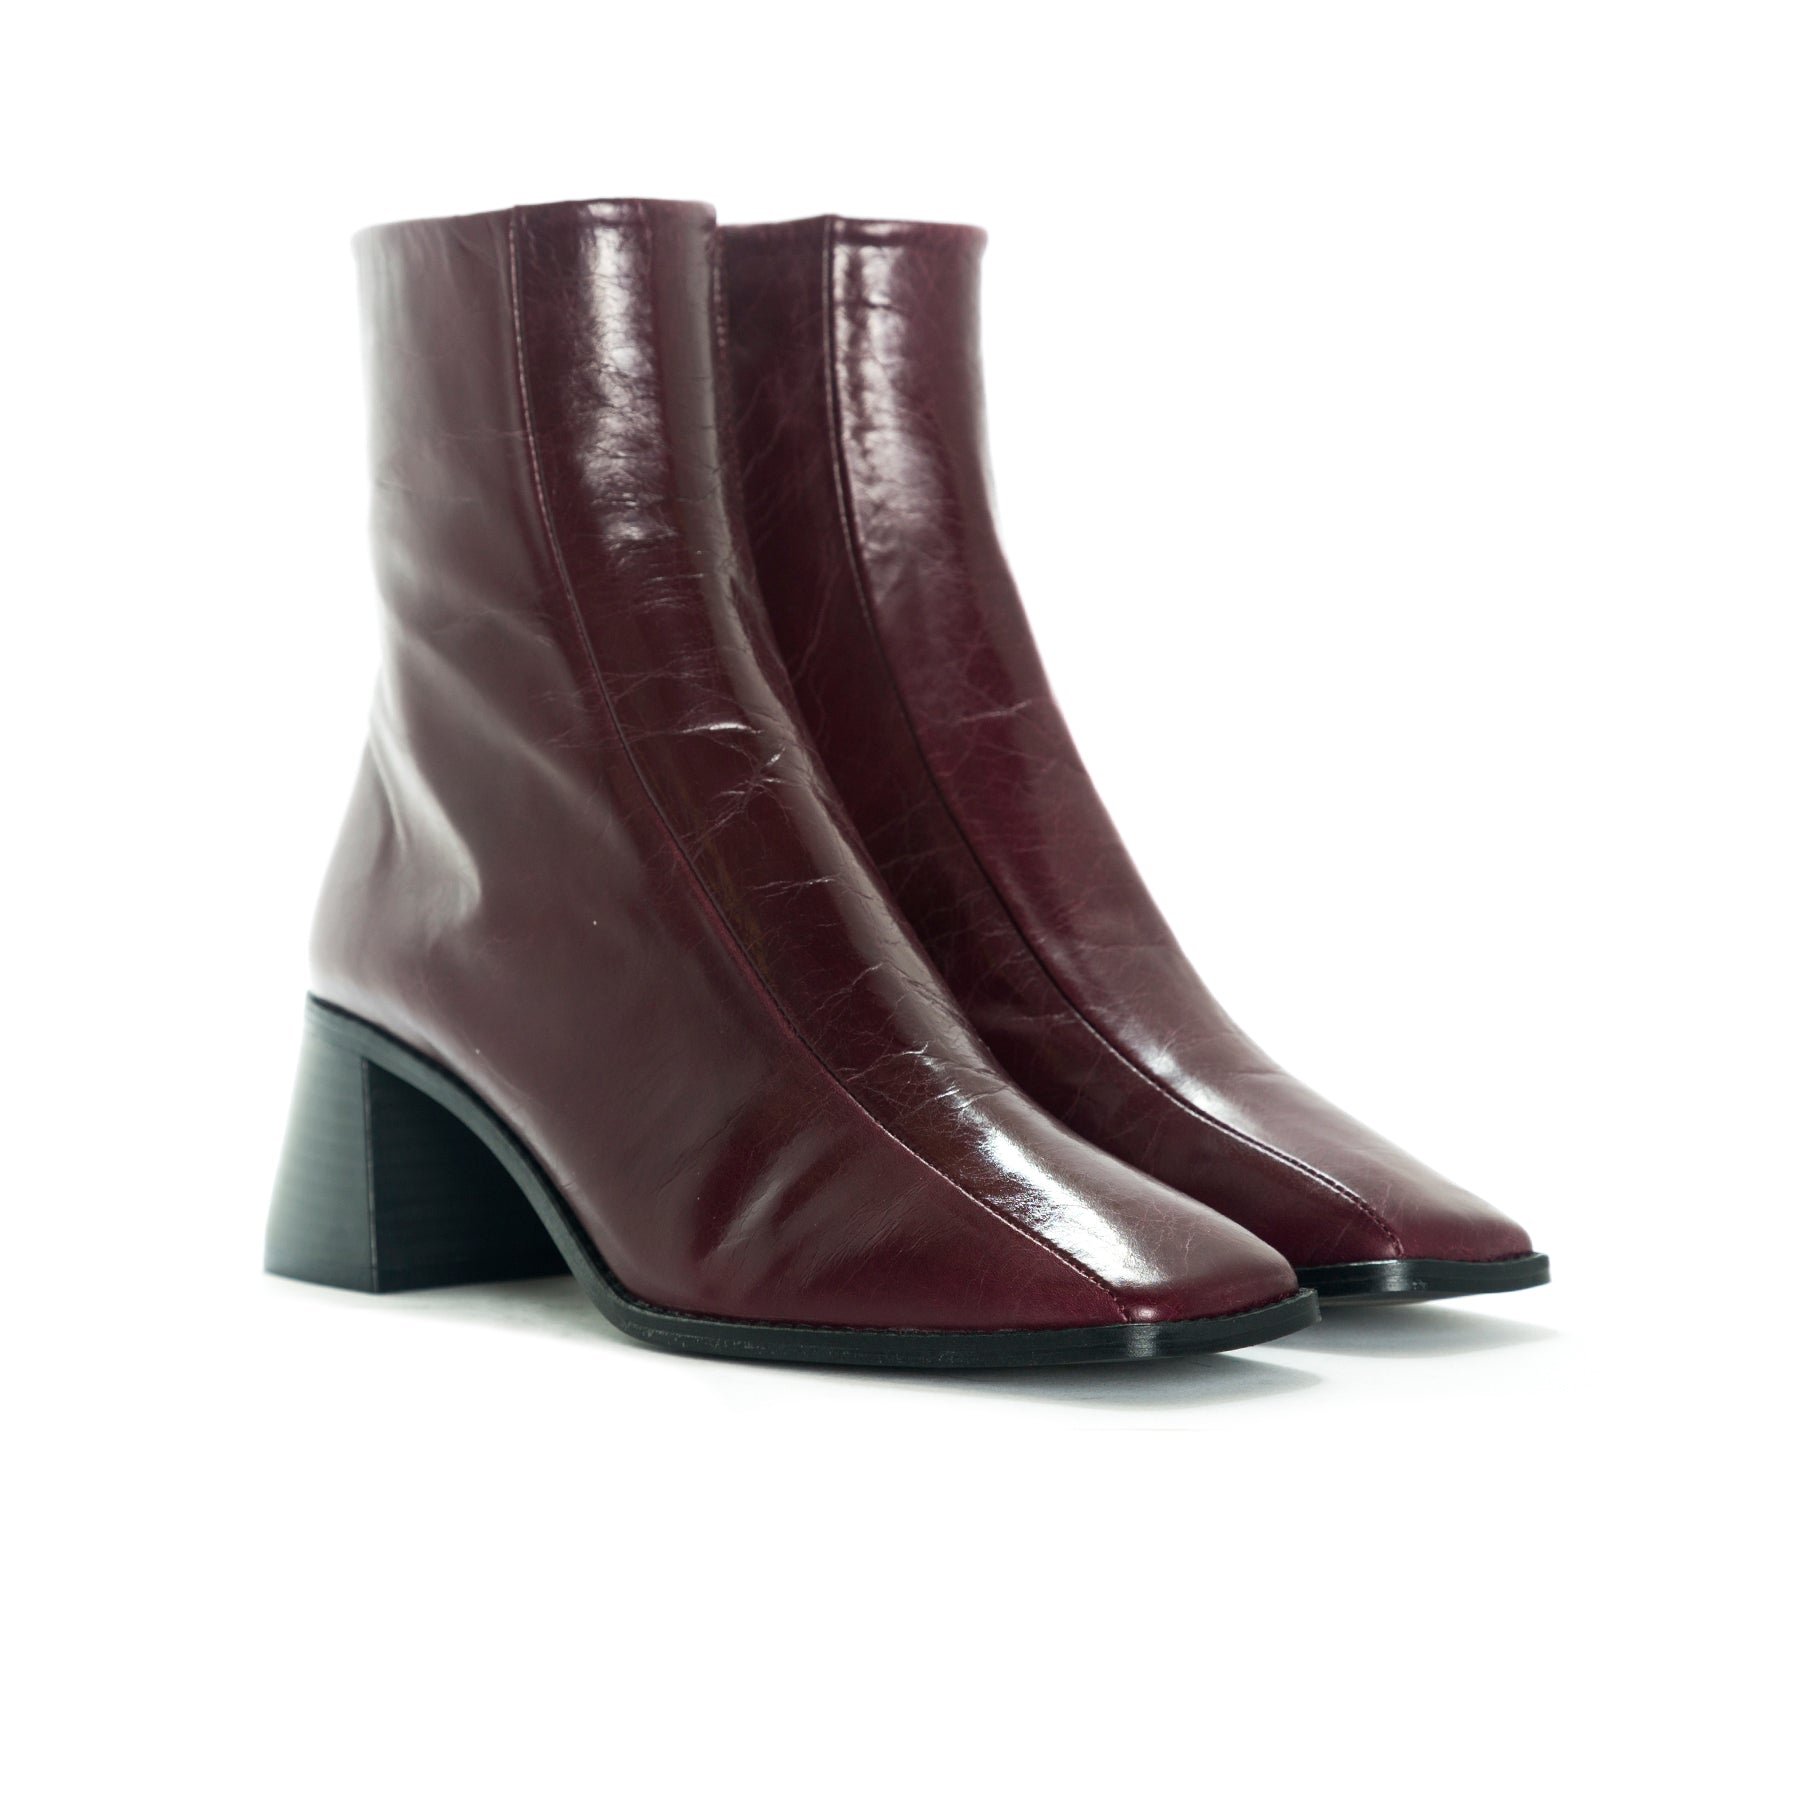 Bogart Bordo Leather